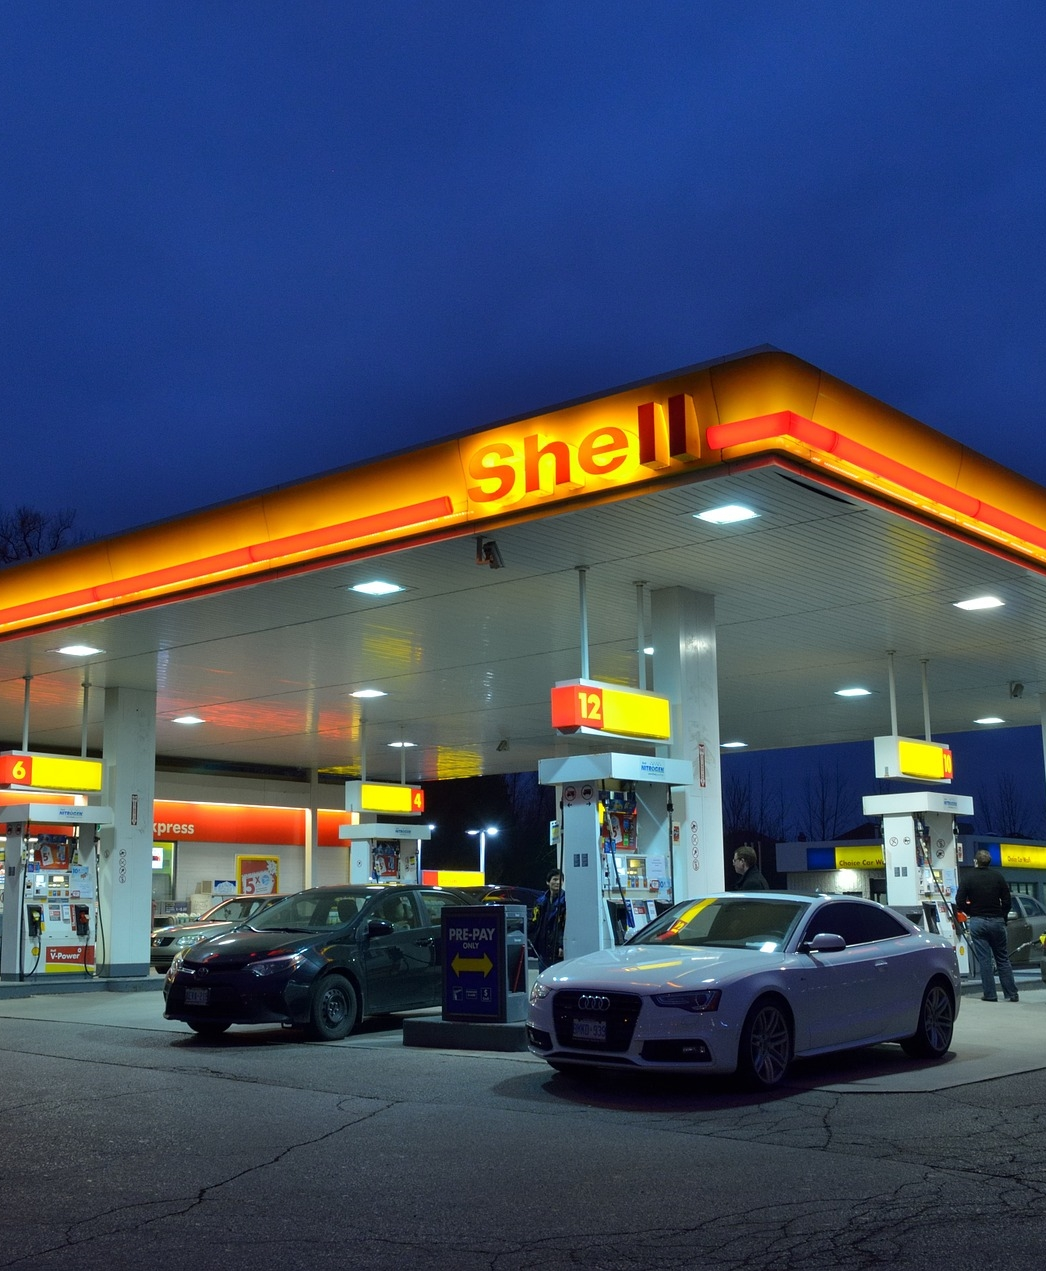 A Shell Garage petrol station